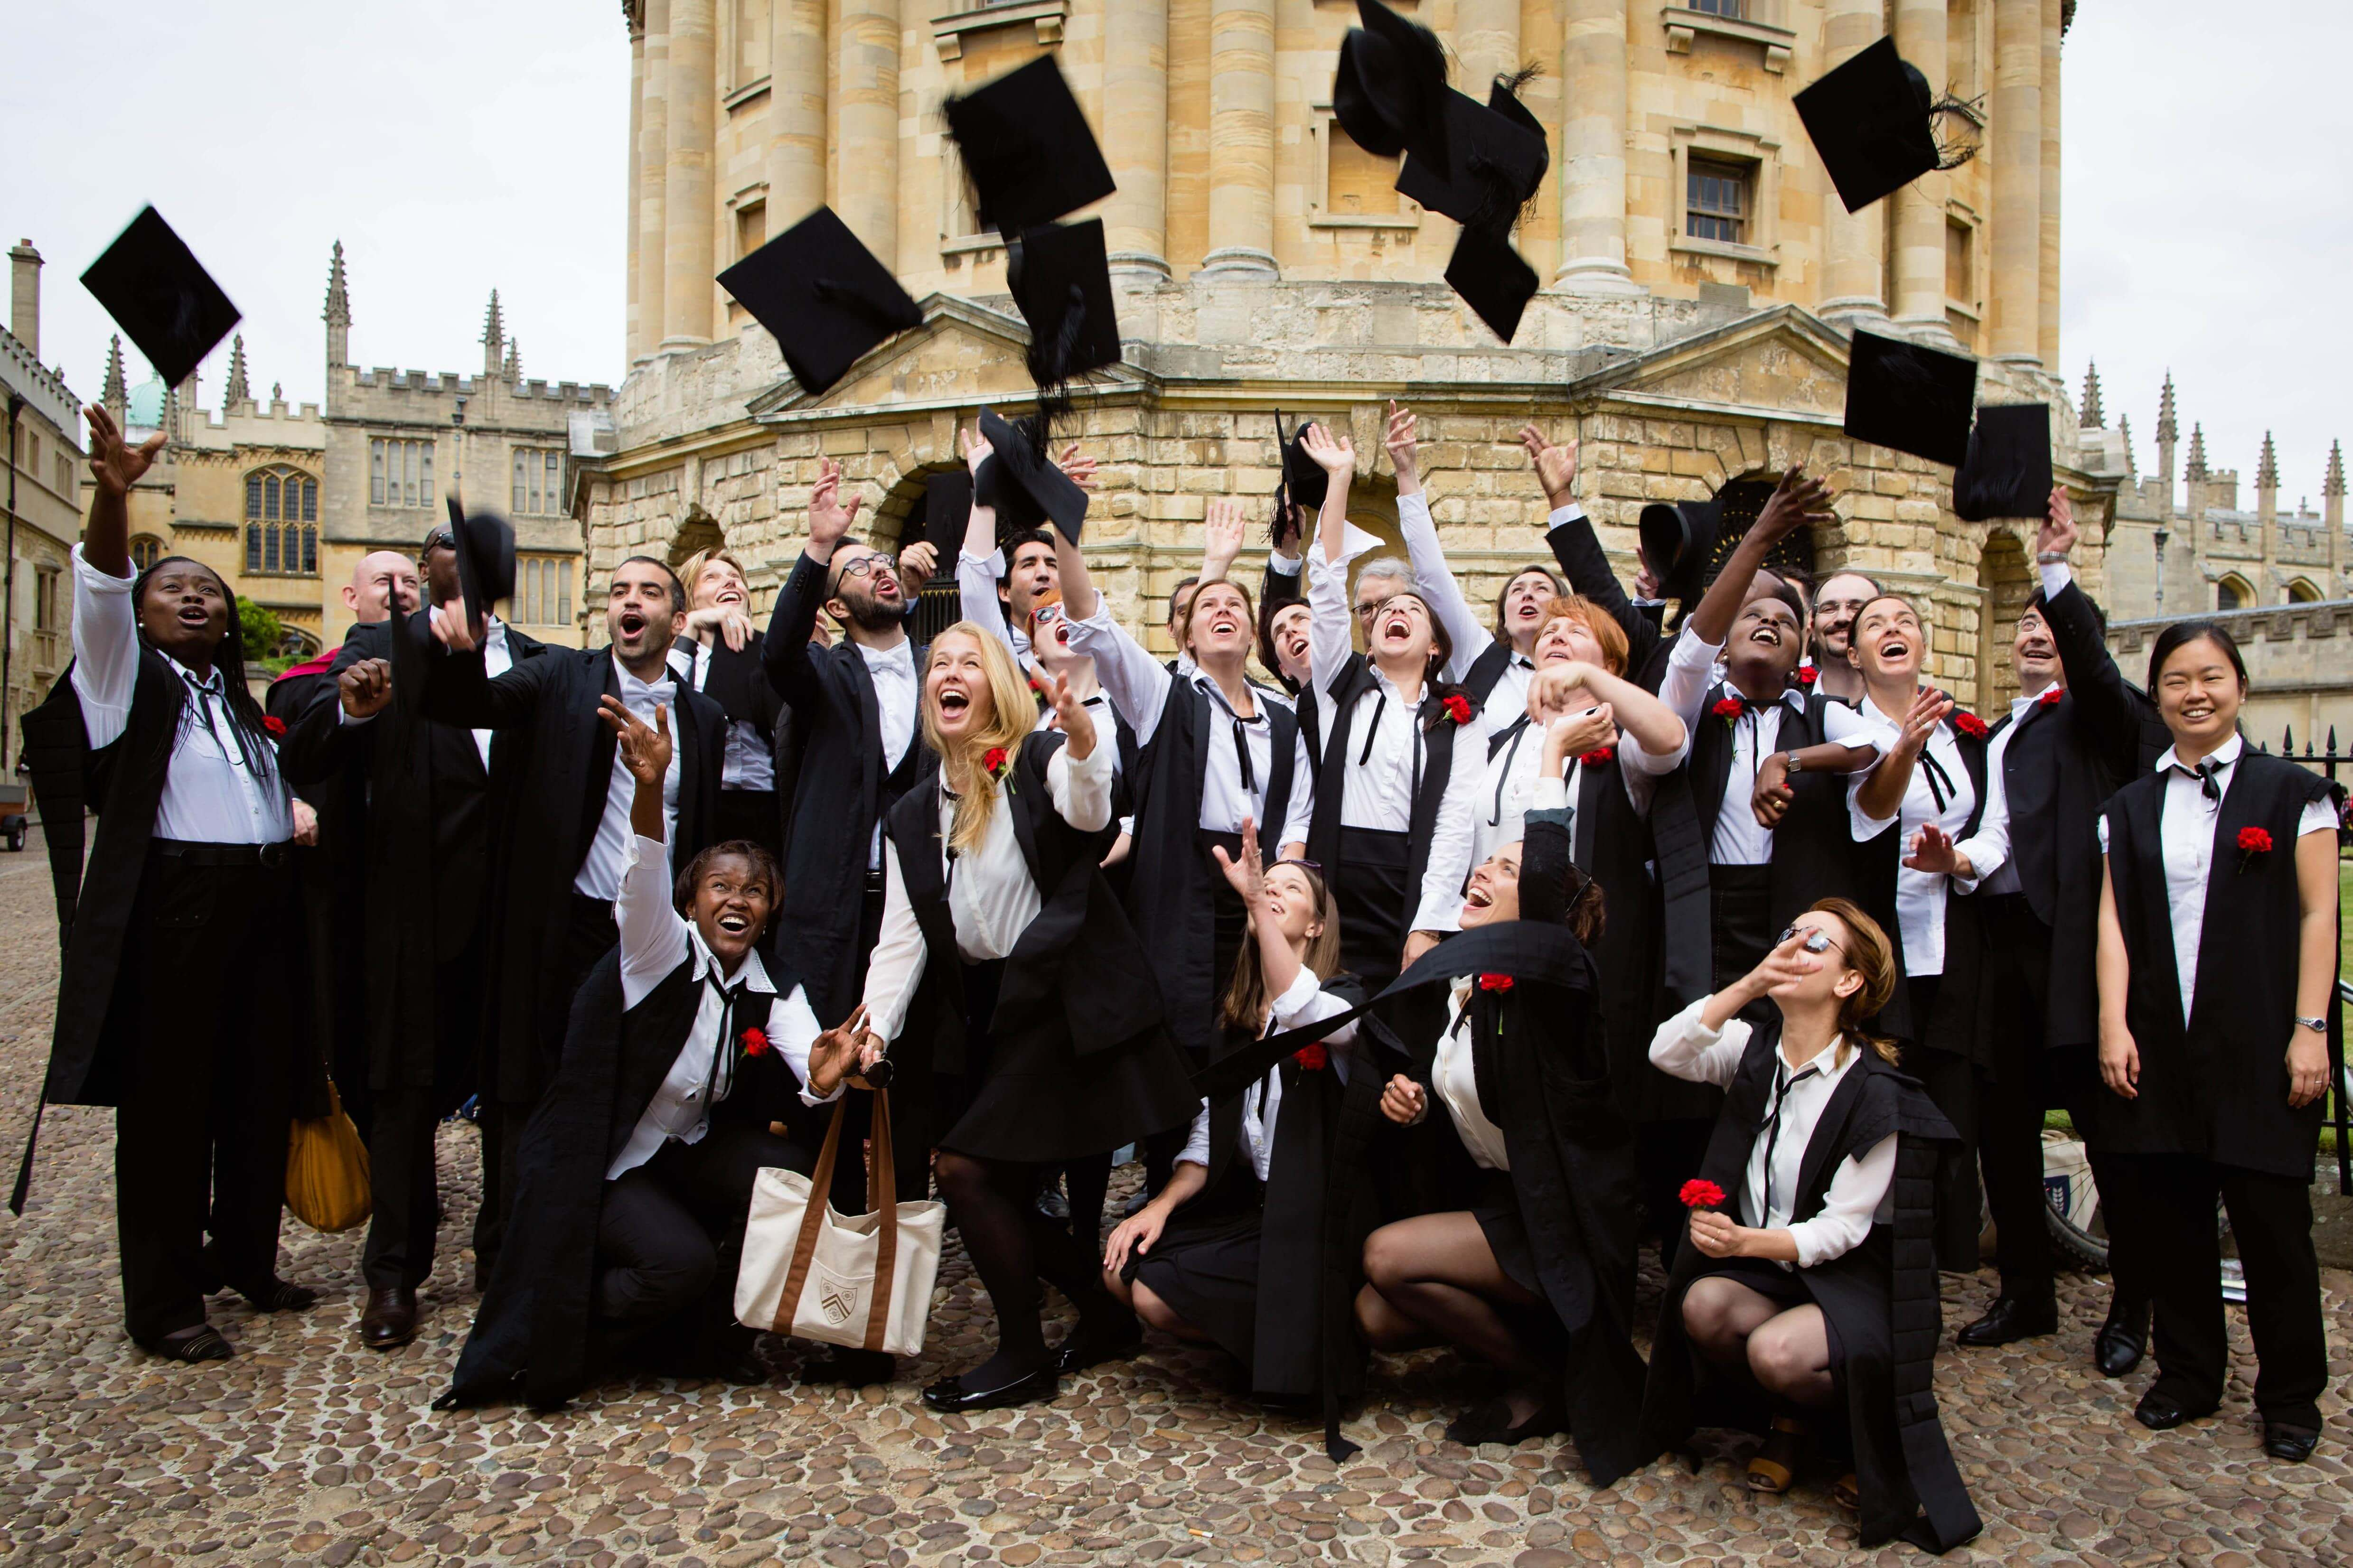 Apply for Master's in International Human Rights Law at the University of Oxford